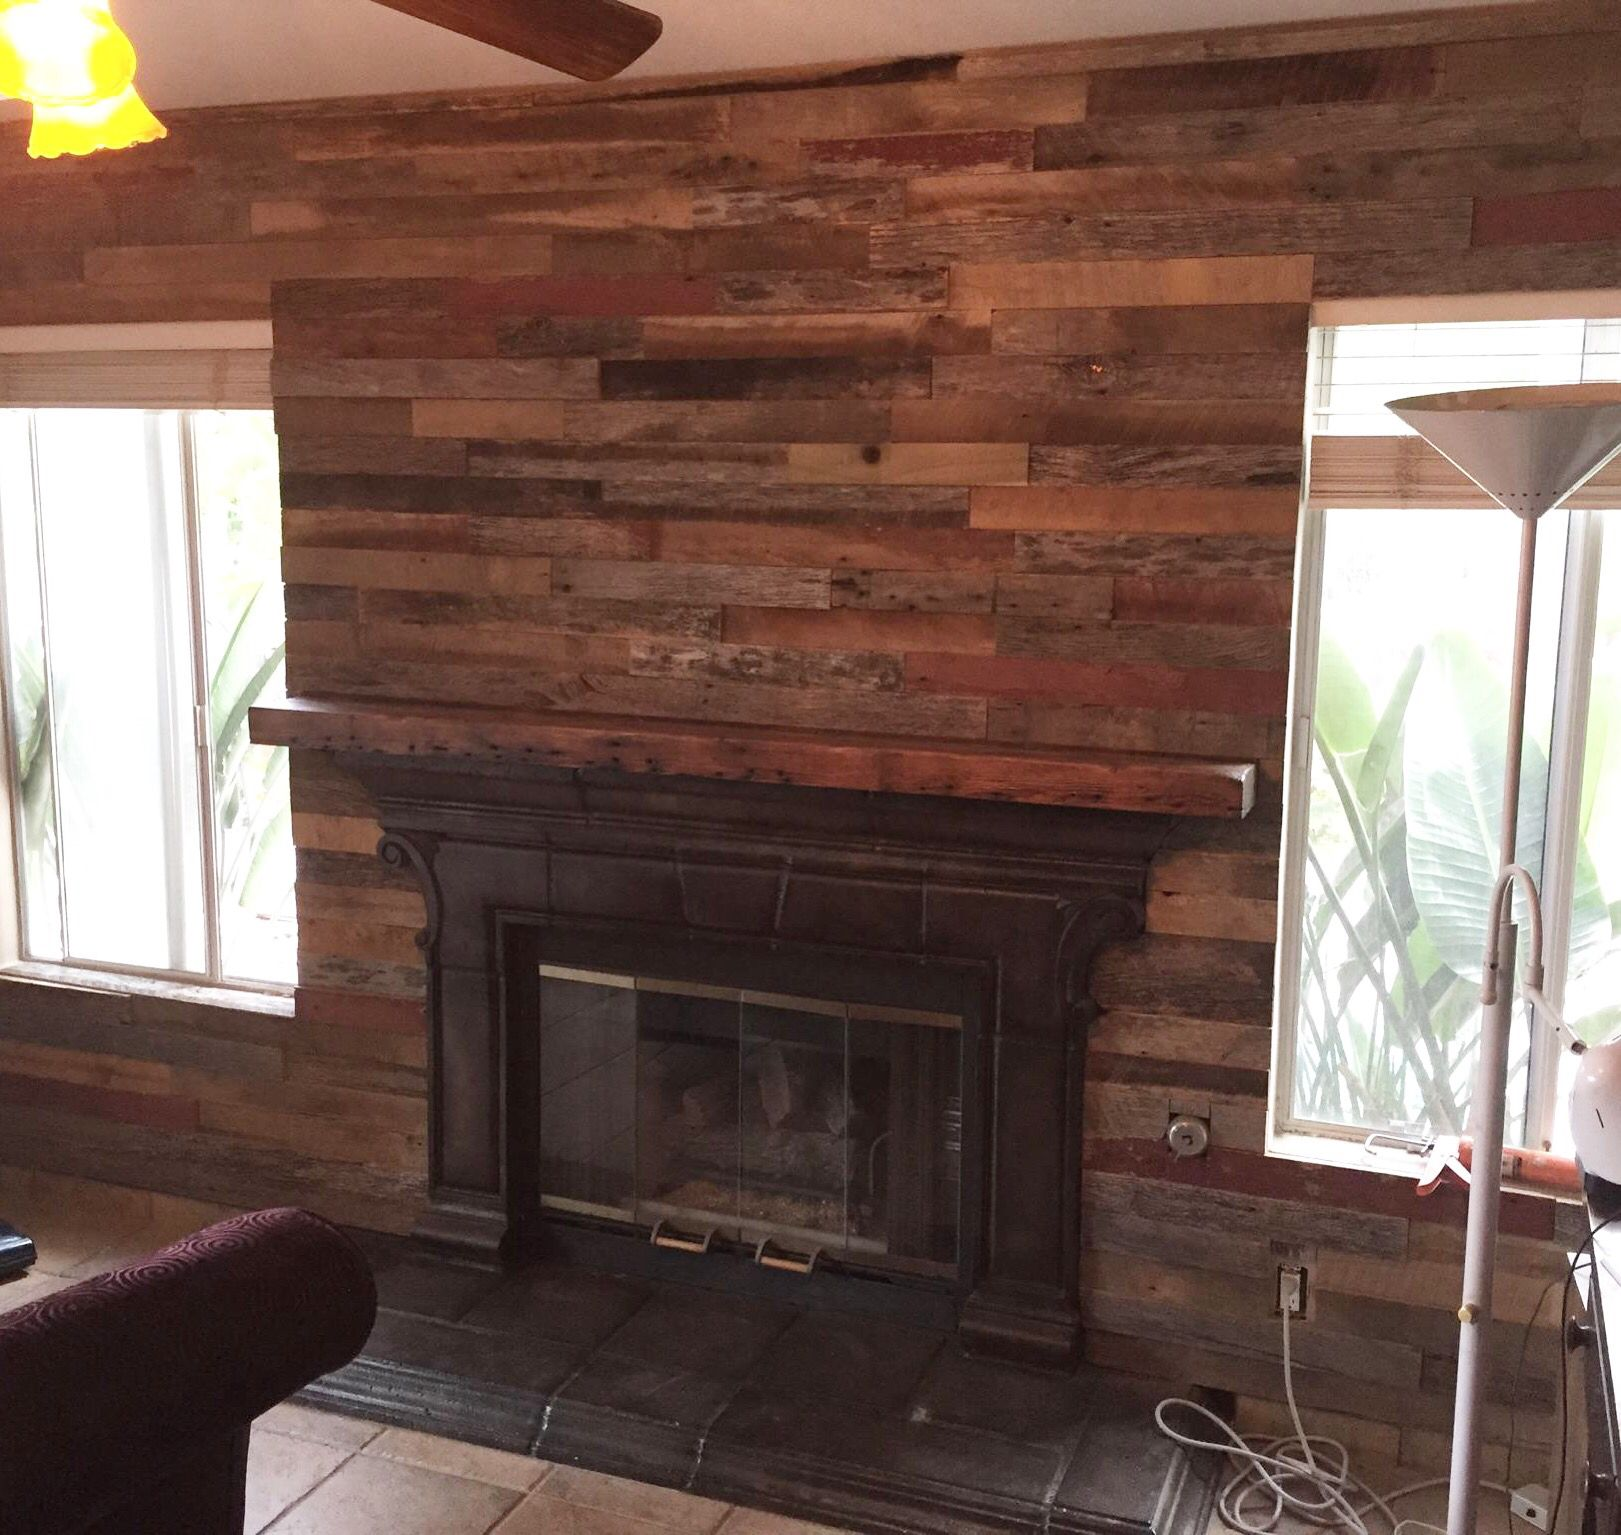 Blue Accent Wall Wood Floors And Ceiling: Talk About An Accent Wall! Reclaimed Wood Covers This Main